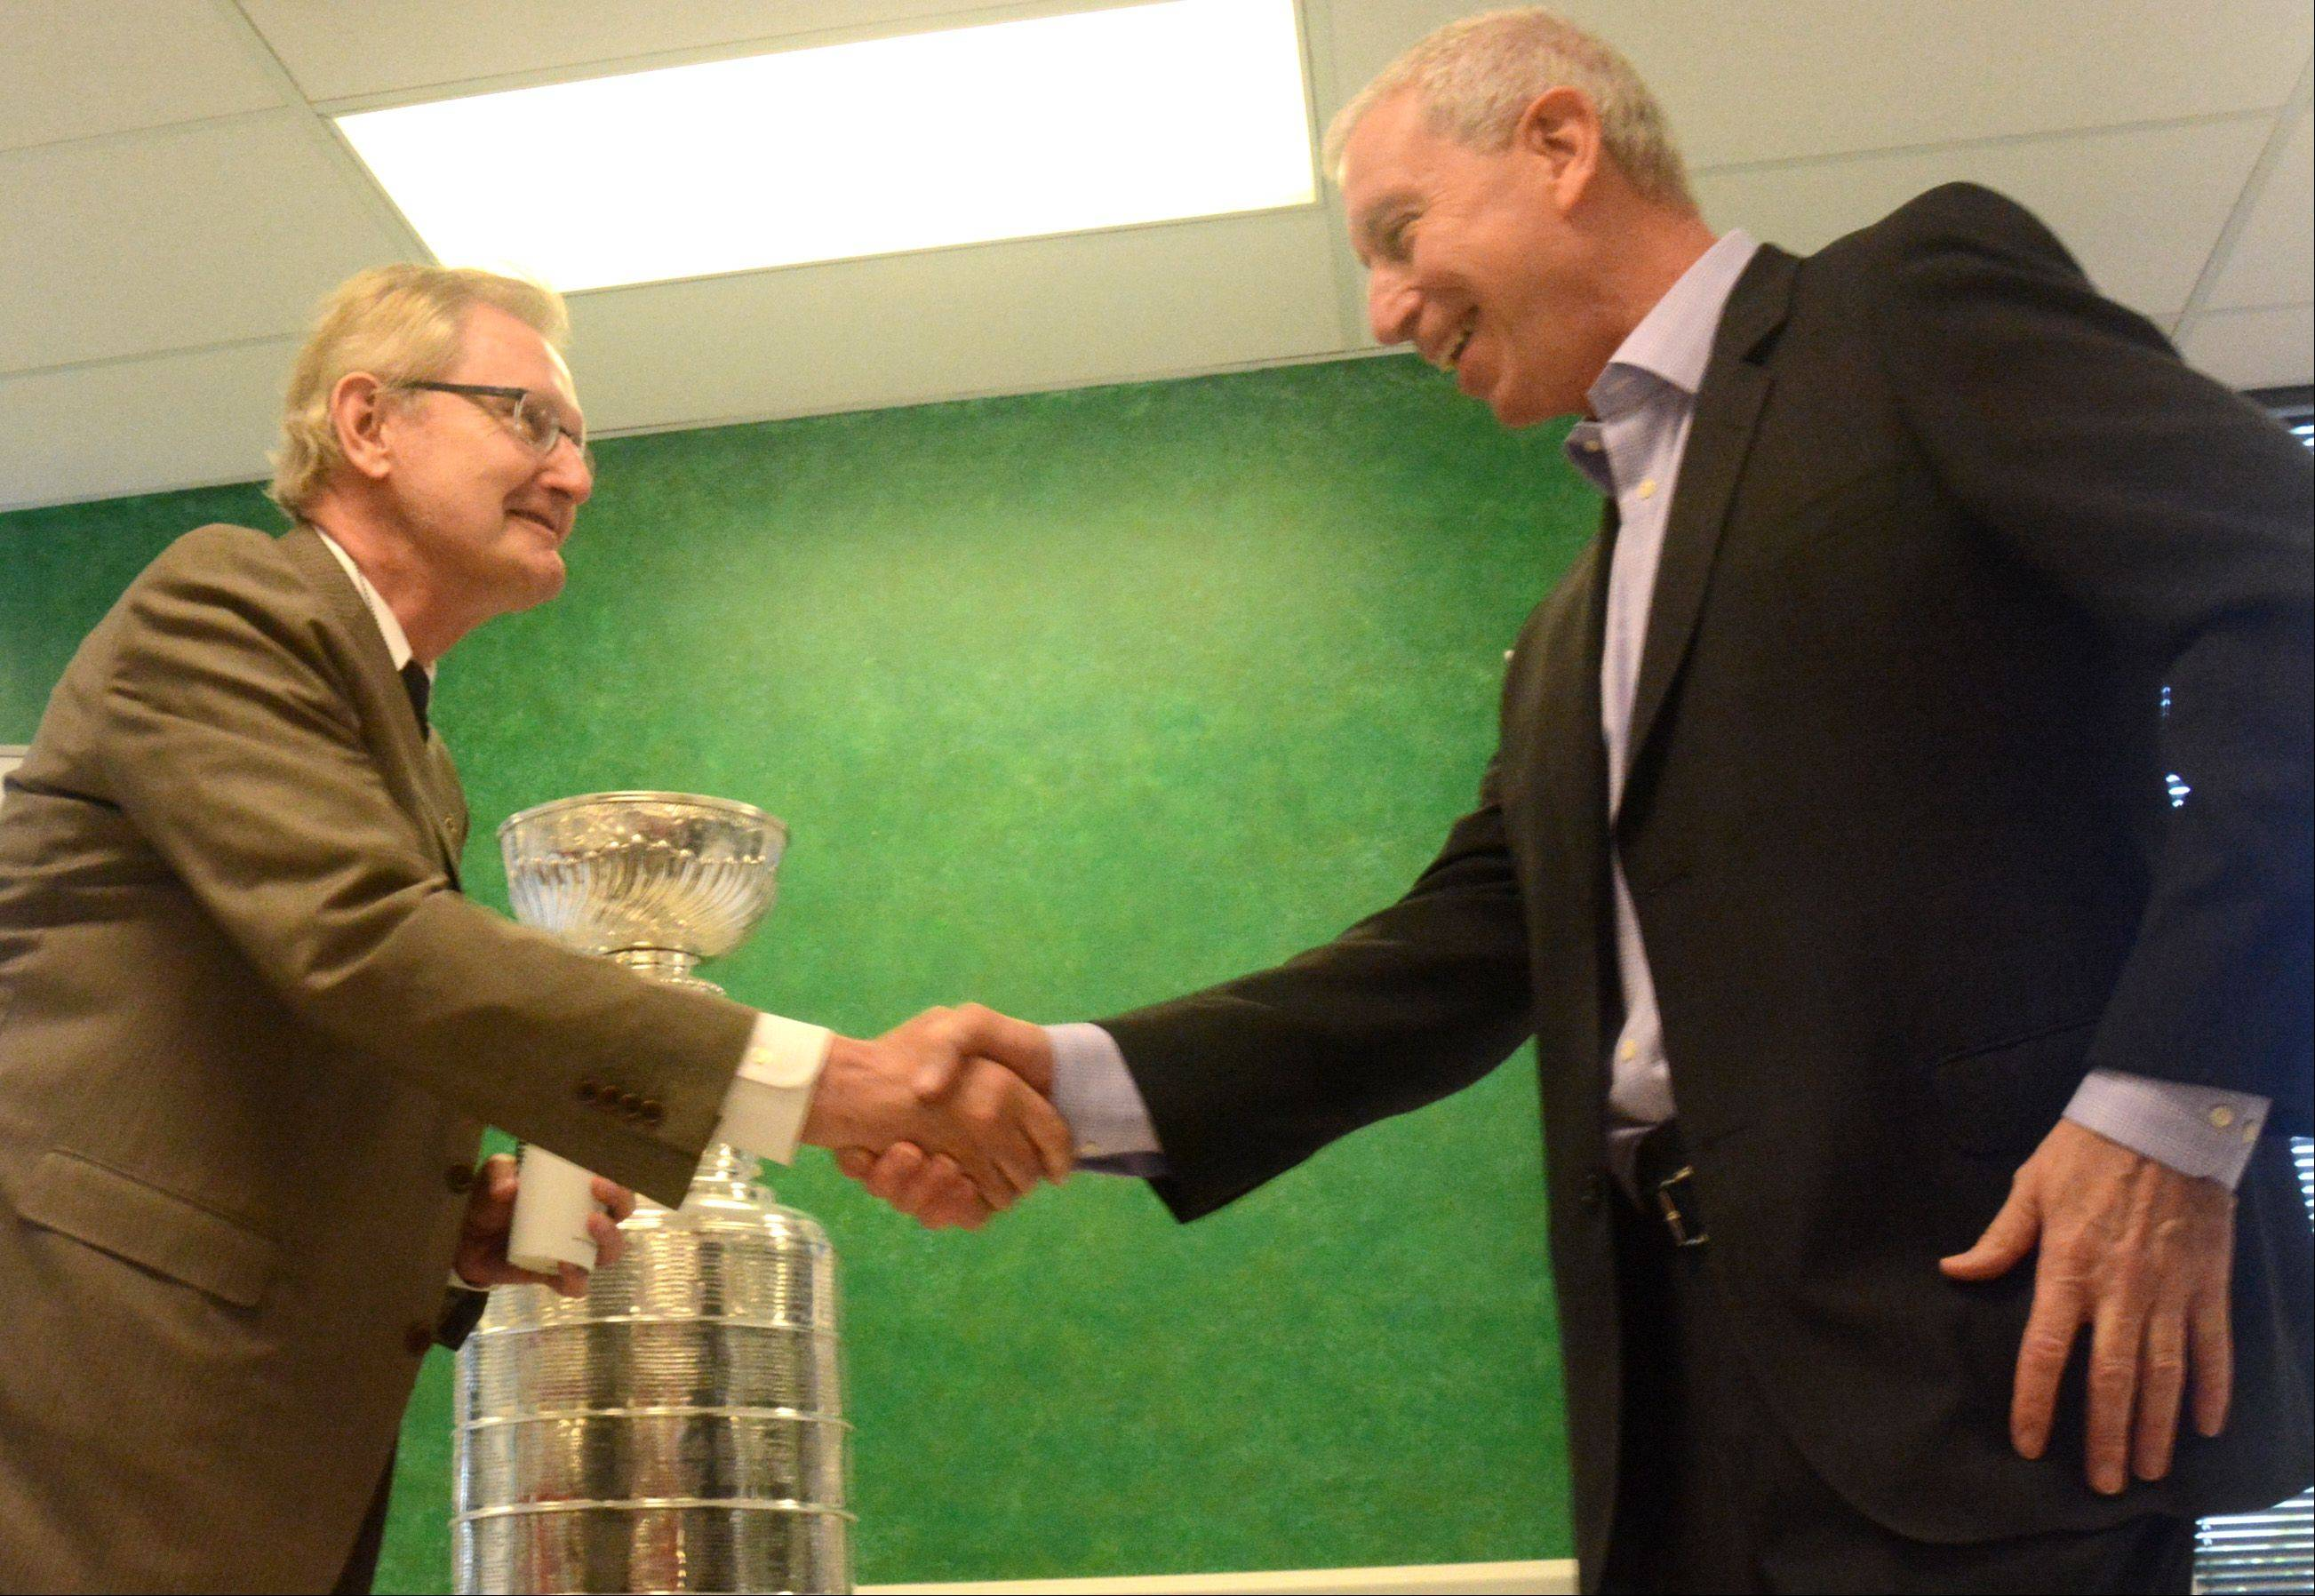 Hawks President John McDonough, left, shakes hands with Bob Paddock Jr. at the Daily Herald office Friday in Arlington Heights.